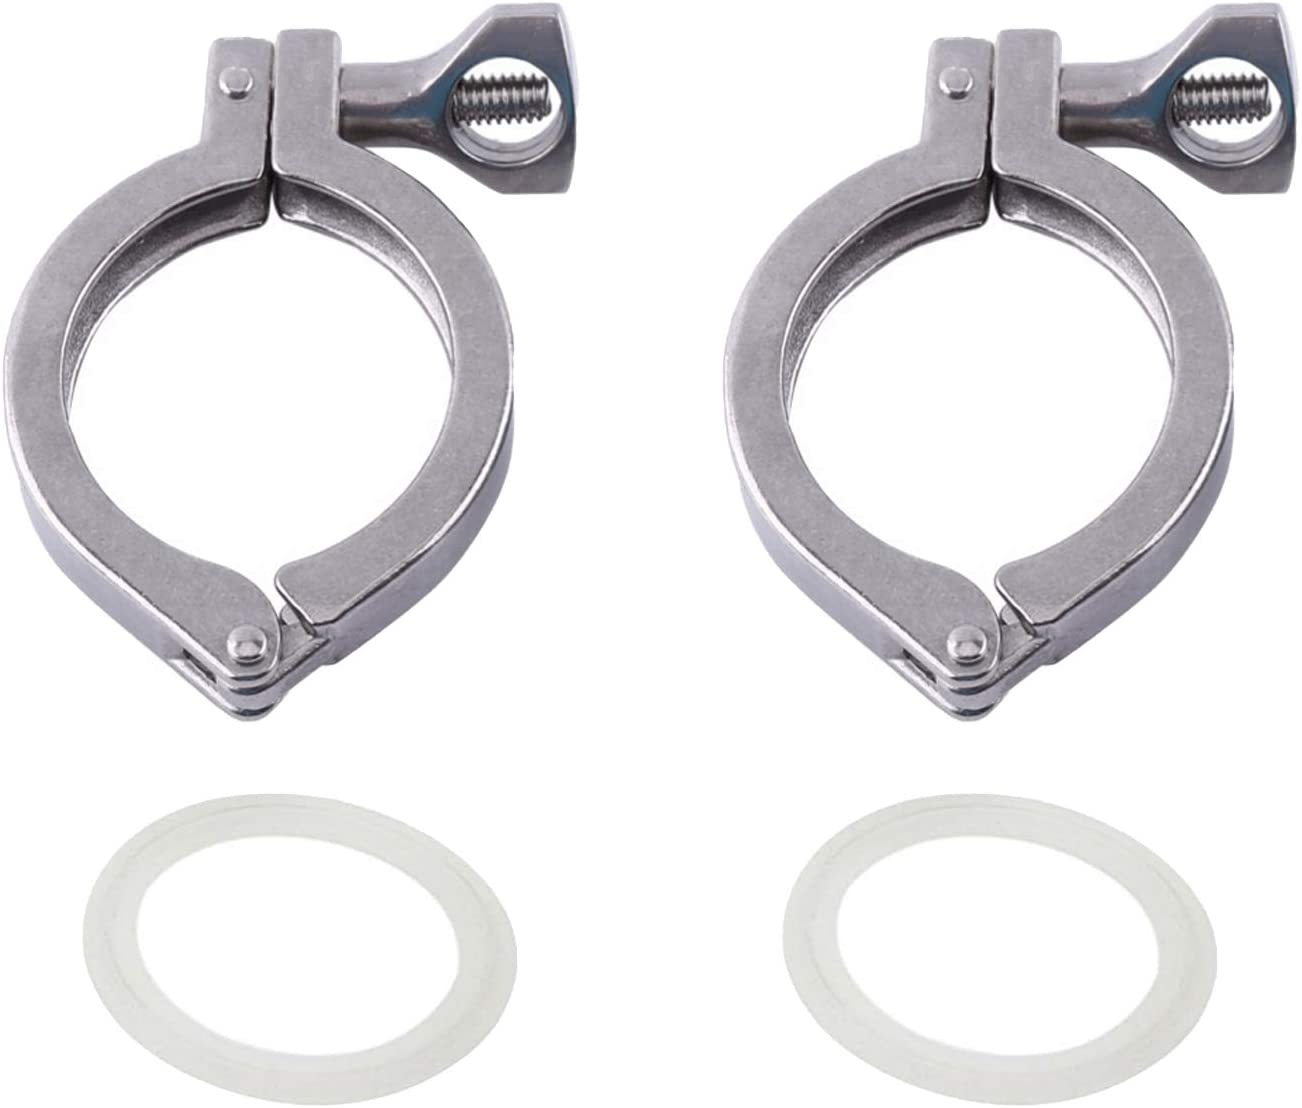 """1.5"""" Tri Clamp Clover Stainless Steel 304 Single Pin Heavy Duty with Wing Nut for Ferrule TC 1.5''-Food Grade"""